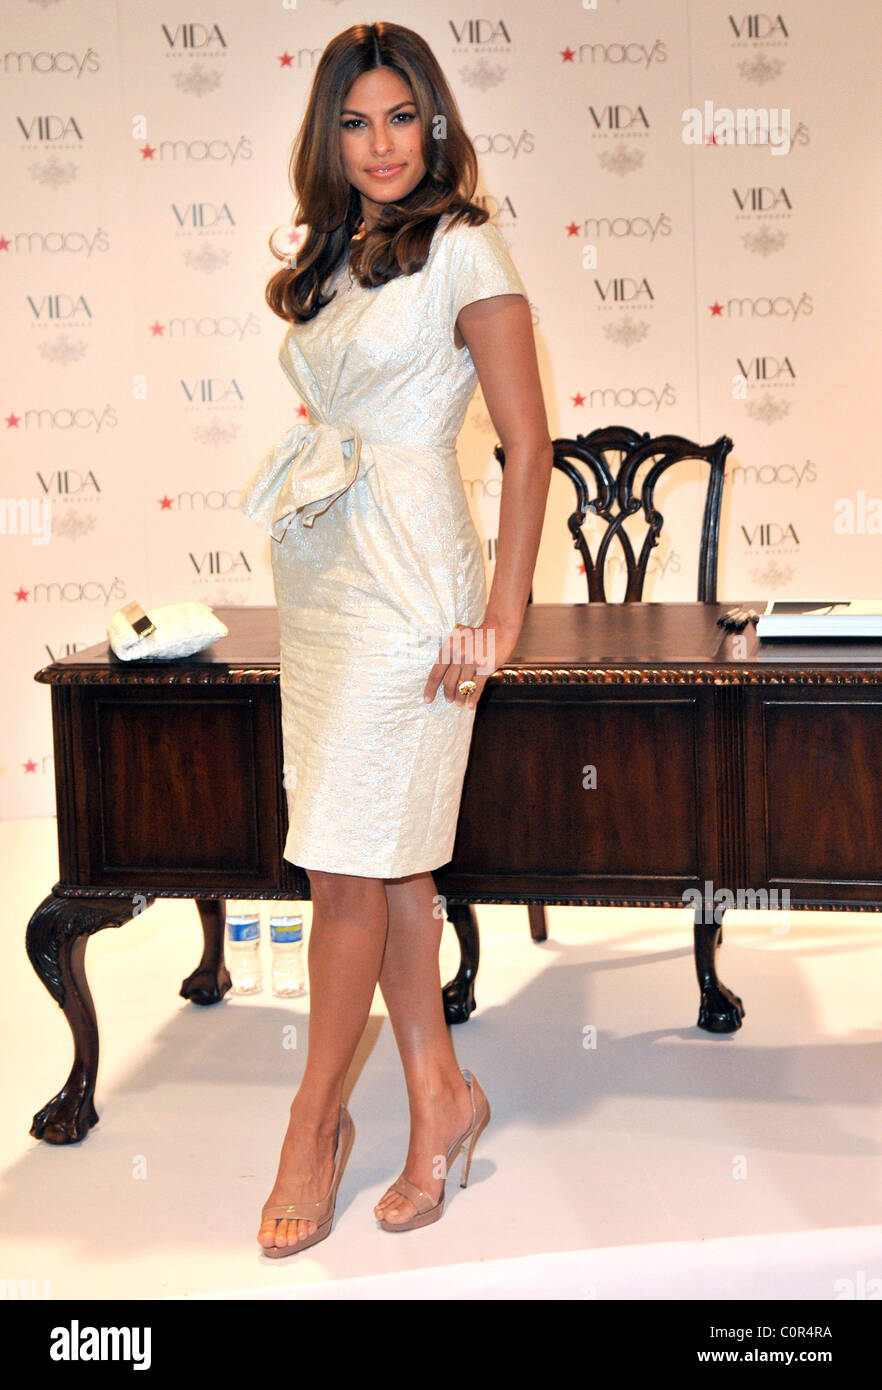 Actress Eva Mendes Launches Her New Home Decor Line Vida At Macy S Miami Florida 20 09 08